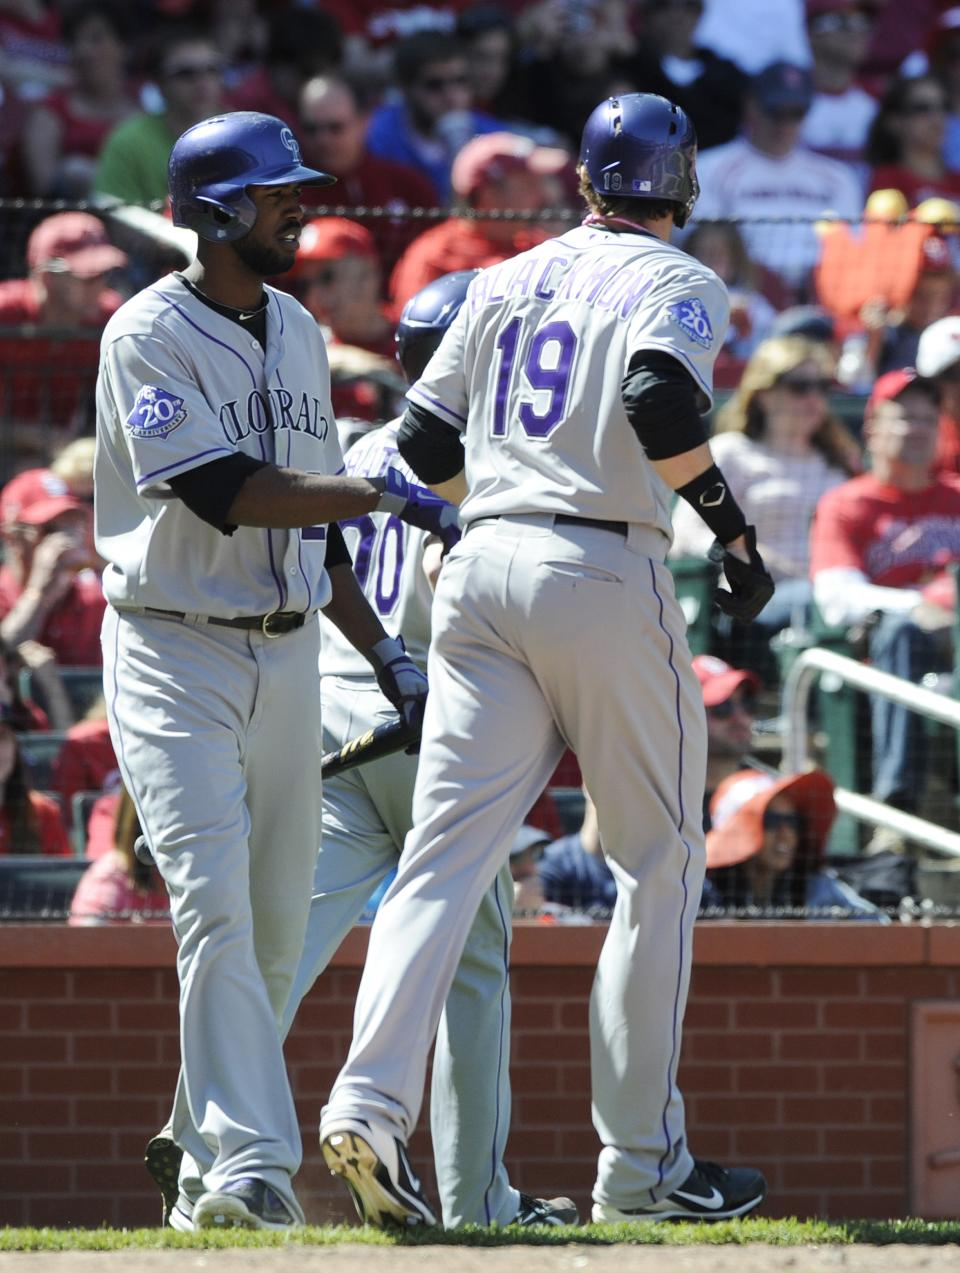 Colorado Rockies' Charlie Blackmon (19) is congratulated by teammate Dexter Fowler, left, after scoring on a three-run home run by by Reid Brignac against the St. Louis Cardinals in the eighth inning in a baseball game on Sunday, May 12, 2013, at Busch Stadium in St. Louis. (AP Photo/Bill Boyce)